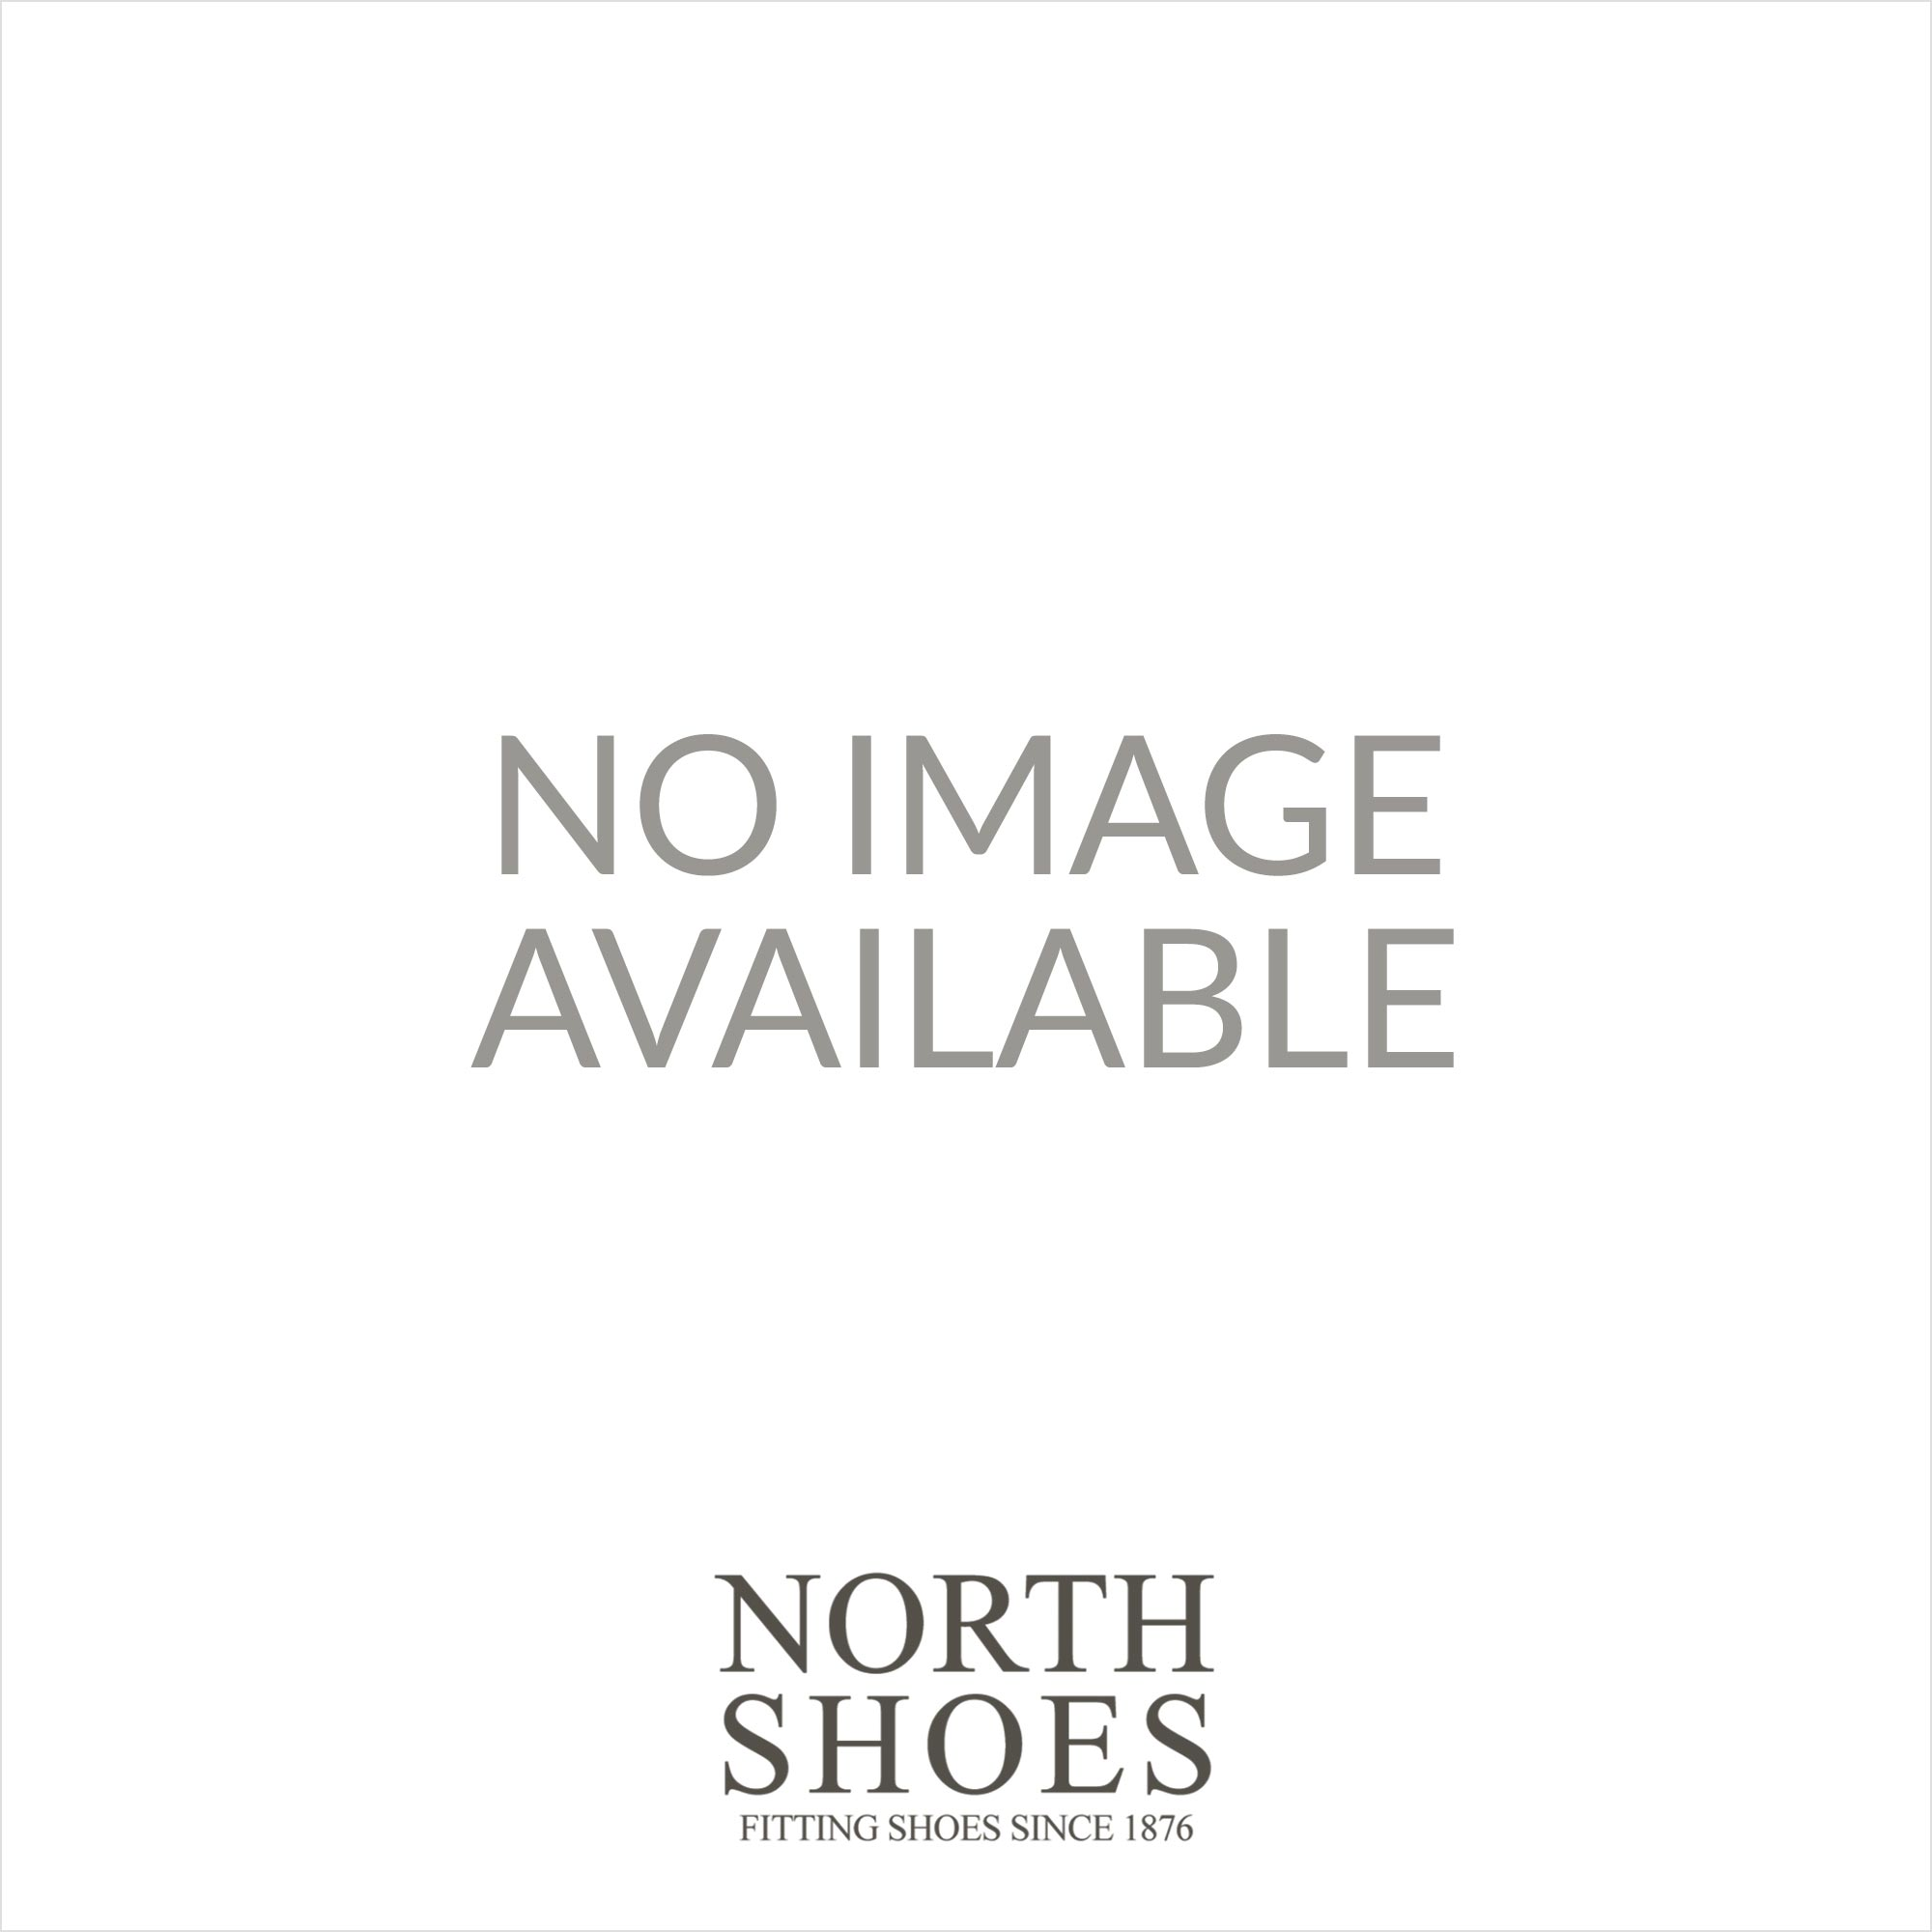 Atwood VZUSF8R Navy Canvas Unisex Lace Up Shoes - UK 1